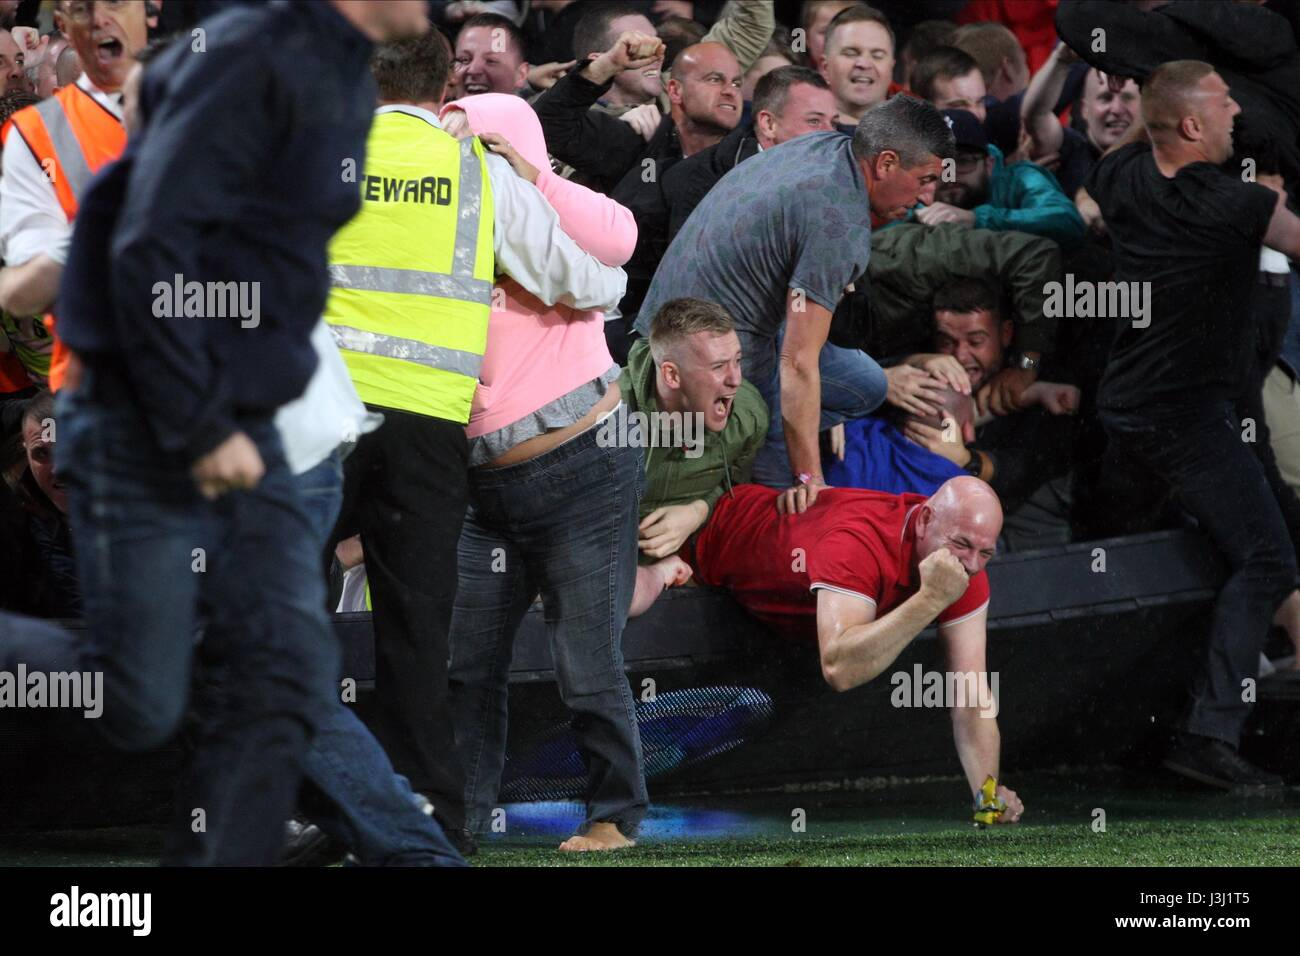 MANCHESTER UNITED FANS CAUSE C HULL CITY FC V HULL CITY FC V MANCHESTER UNIT KCOM STADIUM HULL ENGLAND 27 August - Stock Image